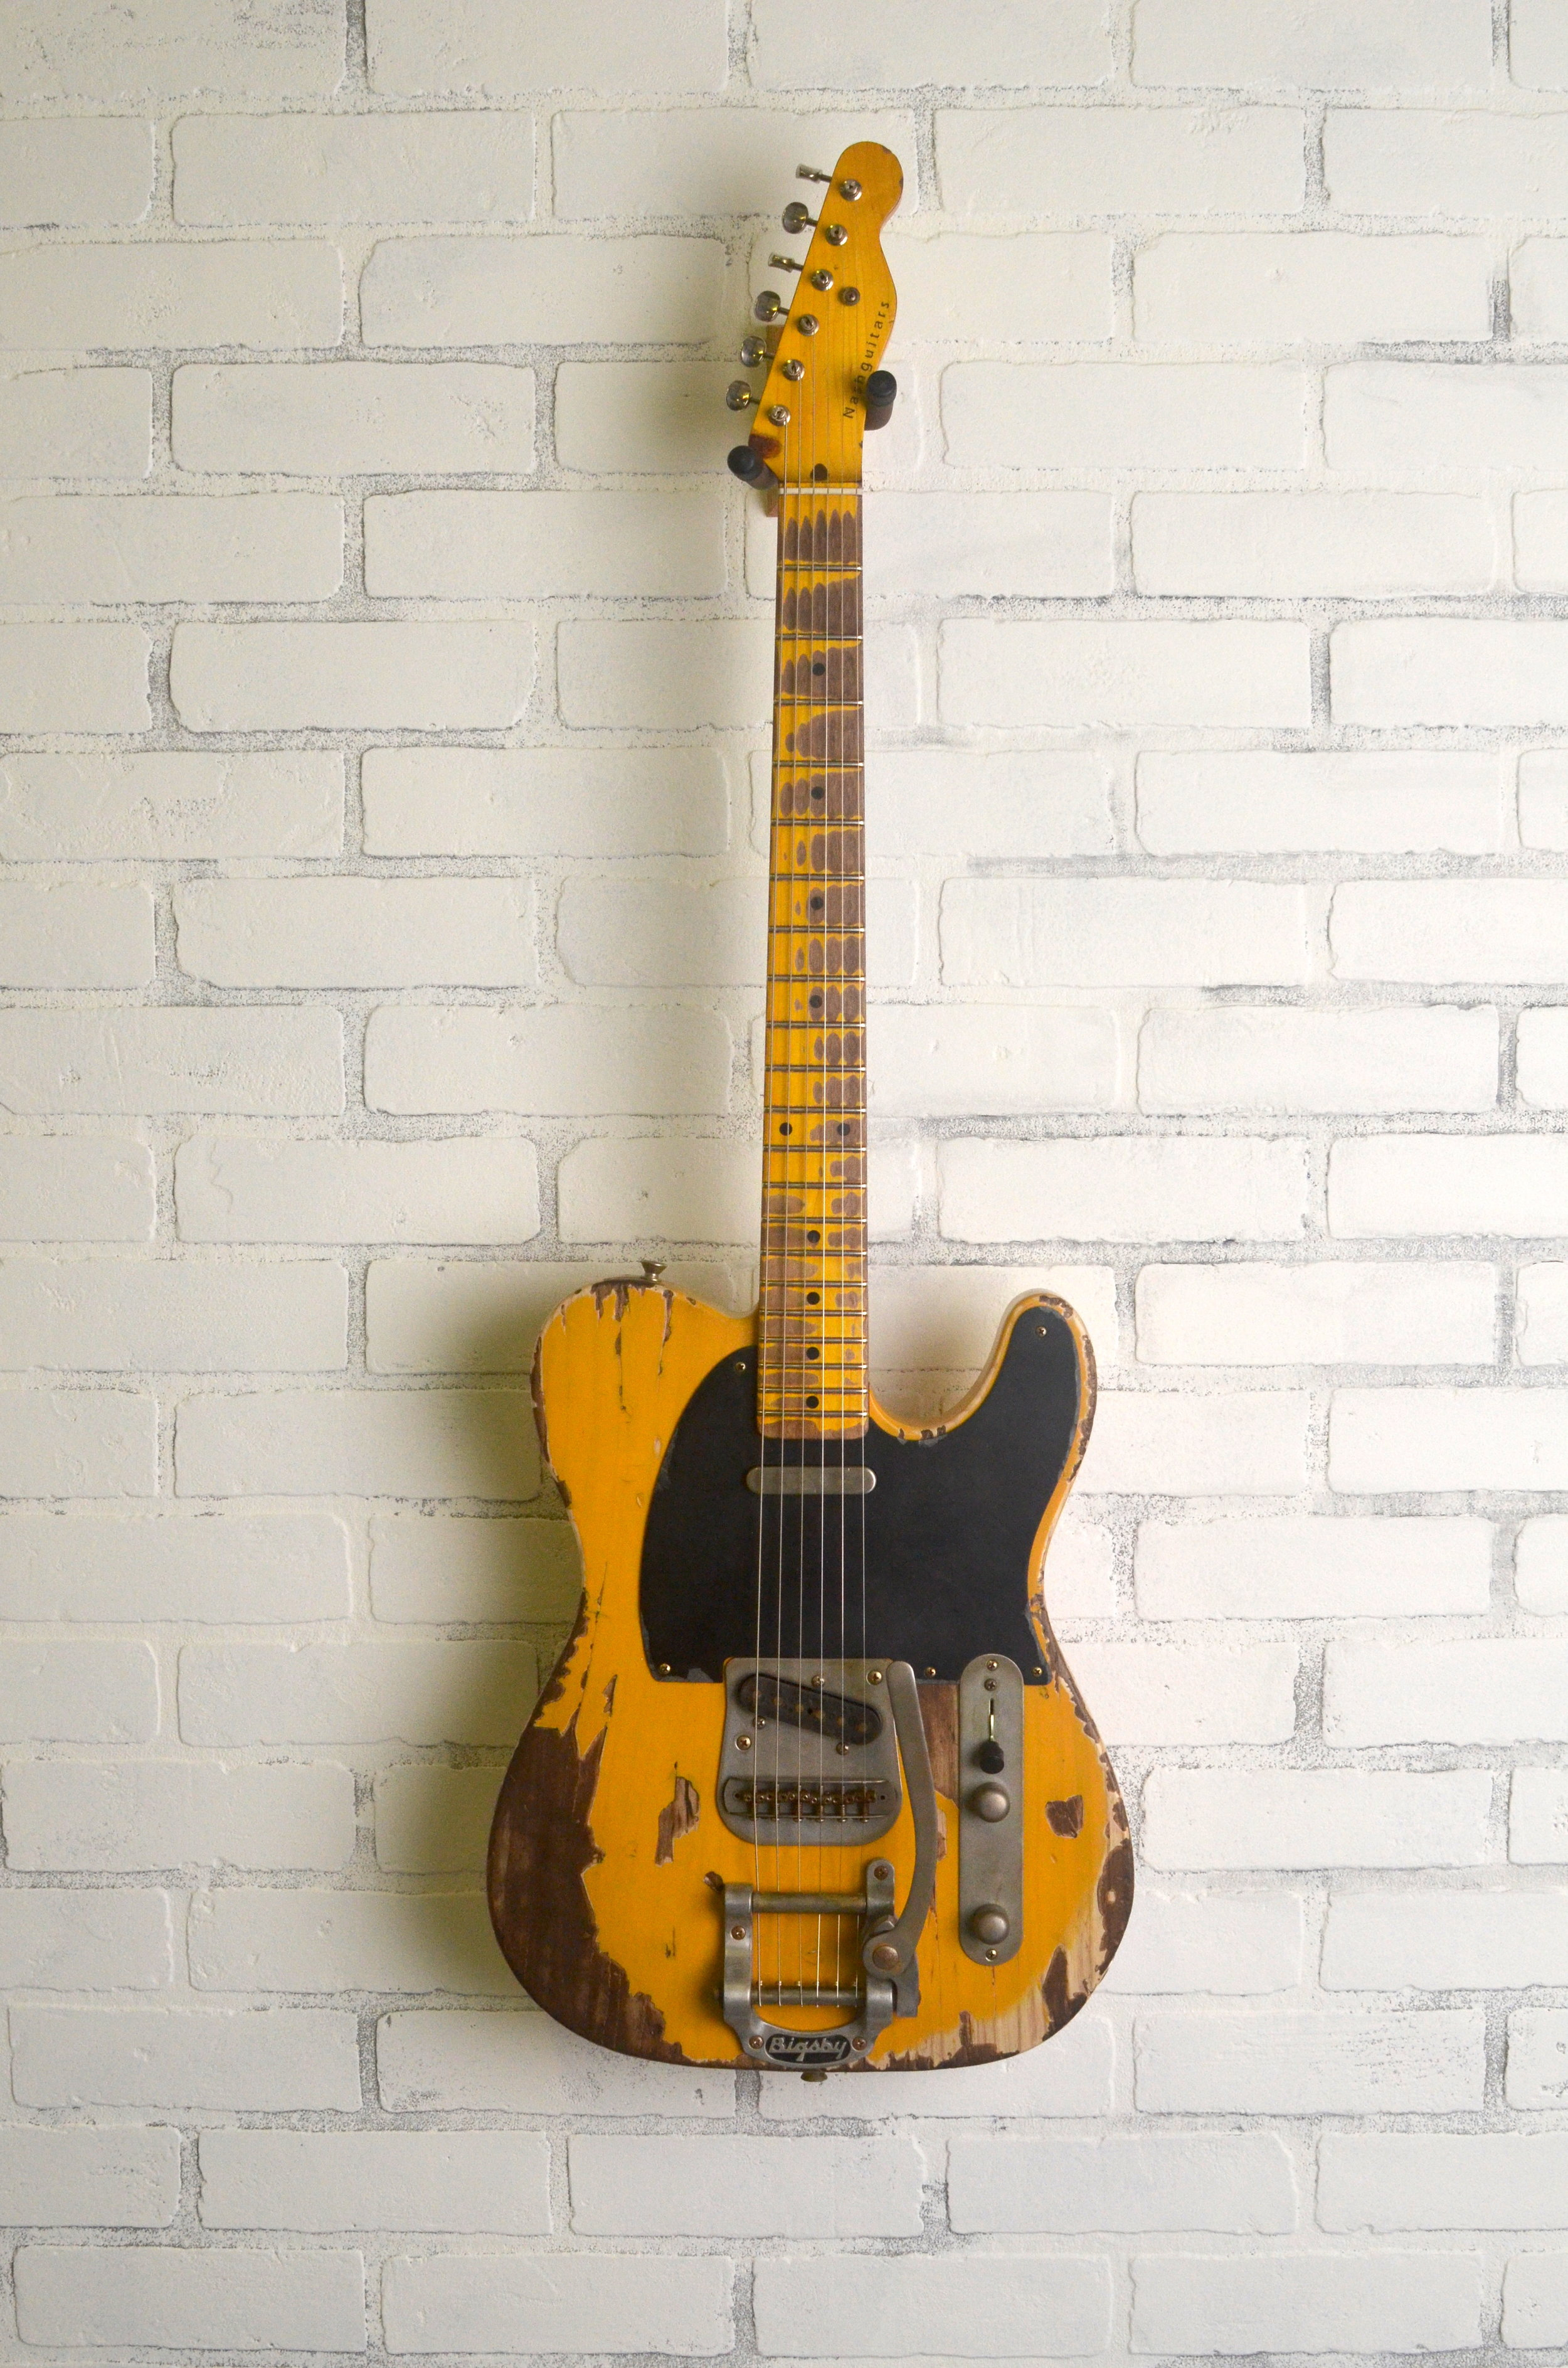 Butterscotch Blonde on Ash w/Bigsby  1-ply Black Guard  Extra Heavy Aging